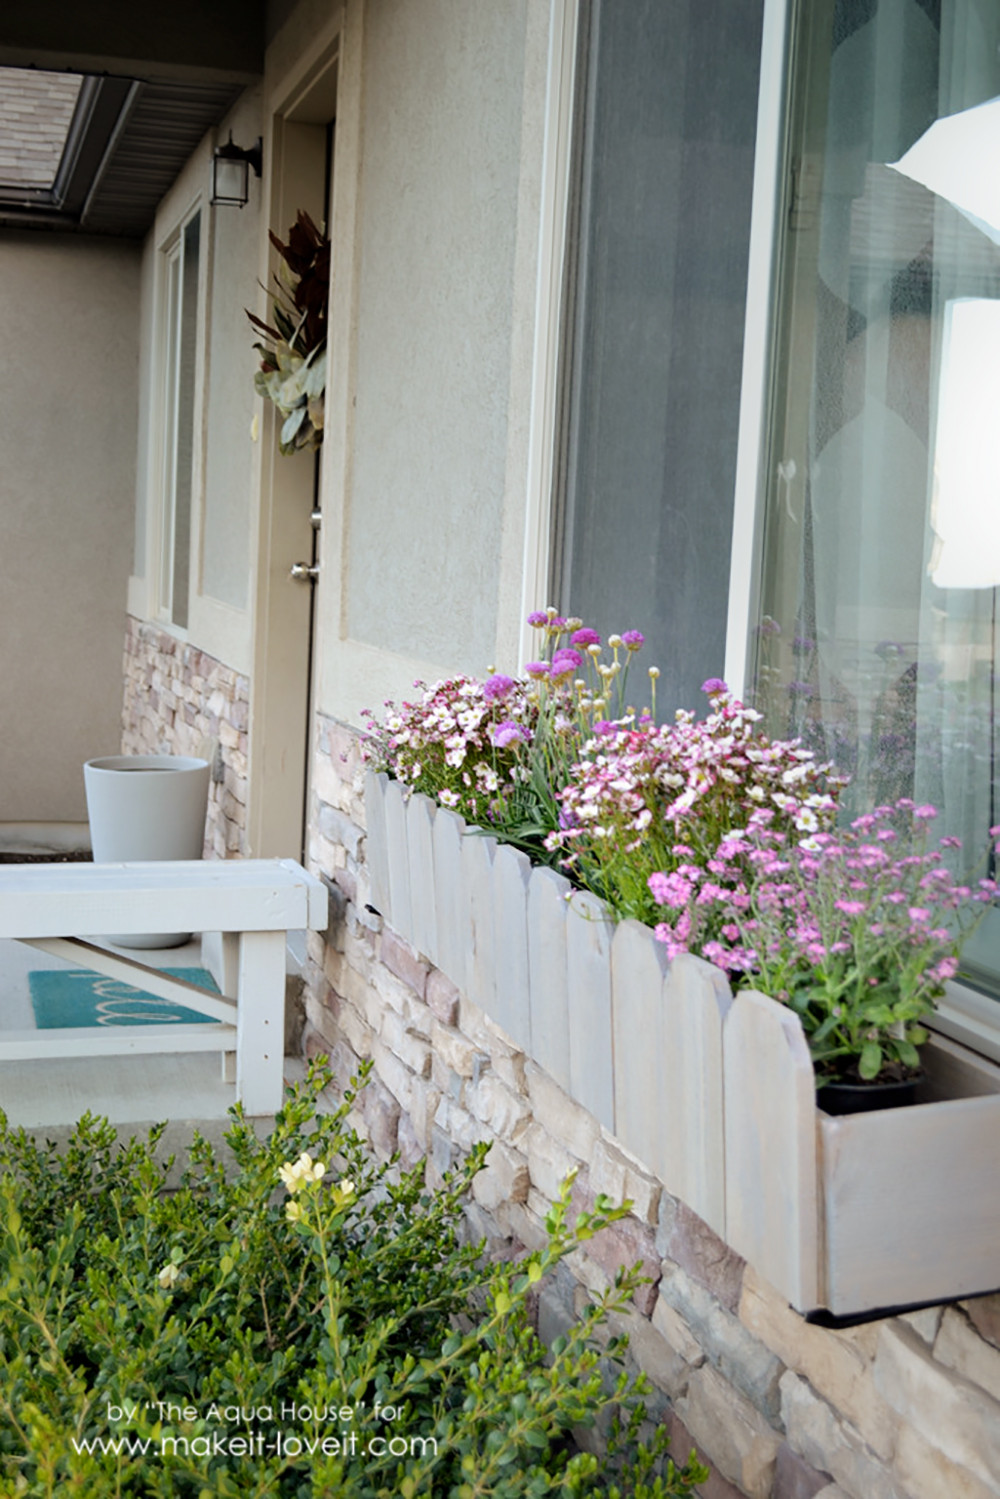 Best ideas about Window Boxes DIY . Save or Pin DIY Window Flower Boxes Now.